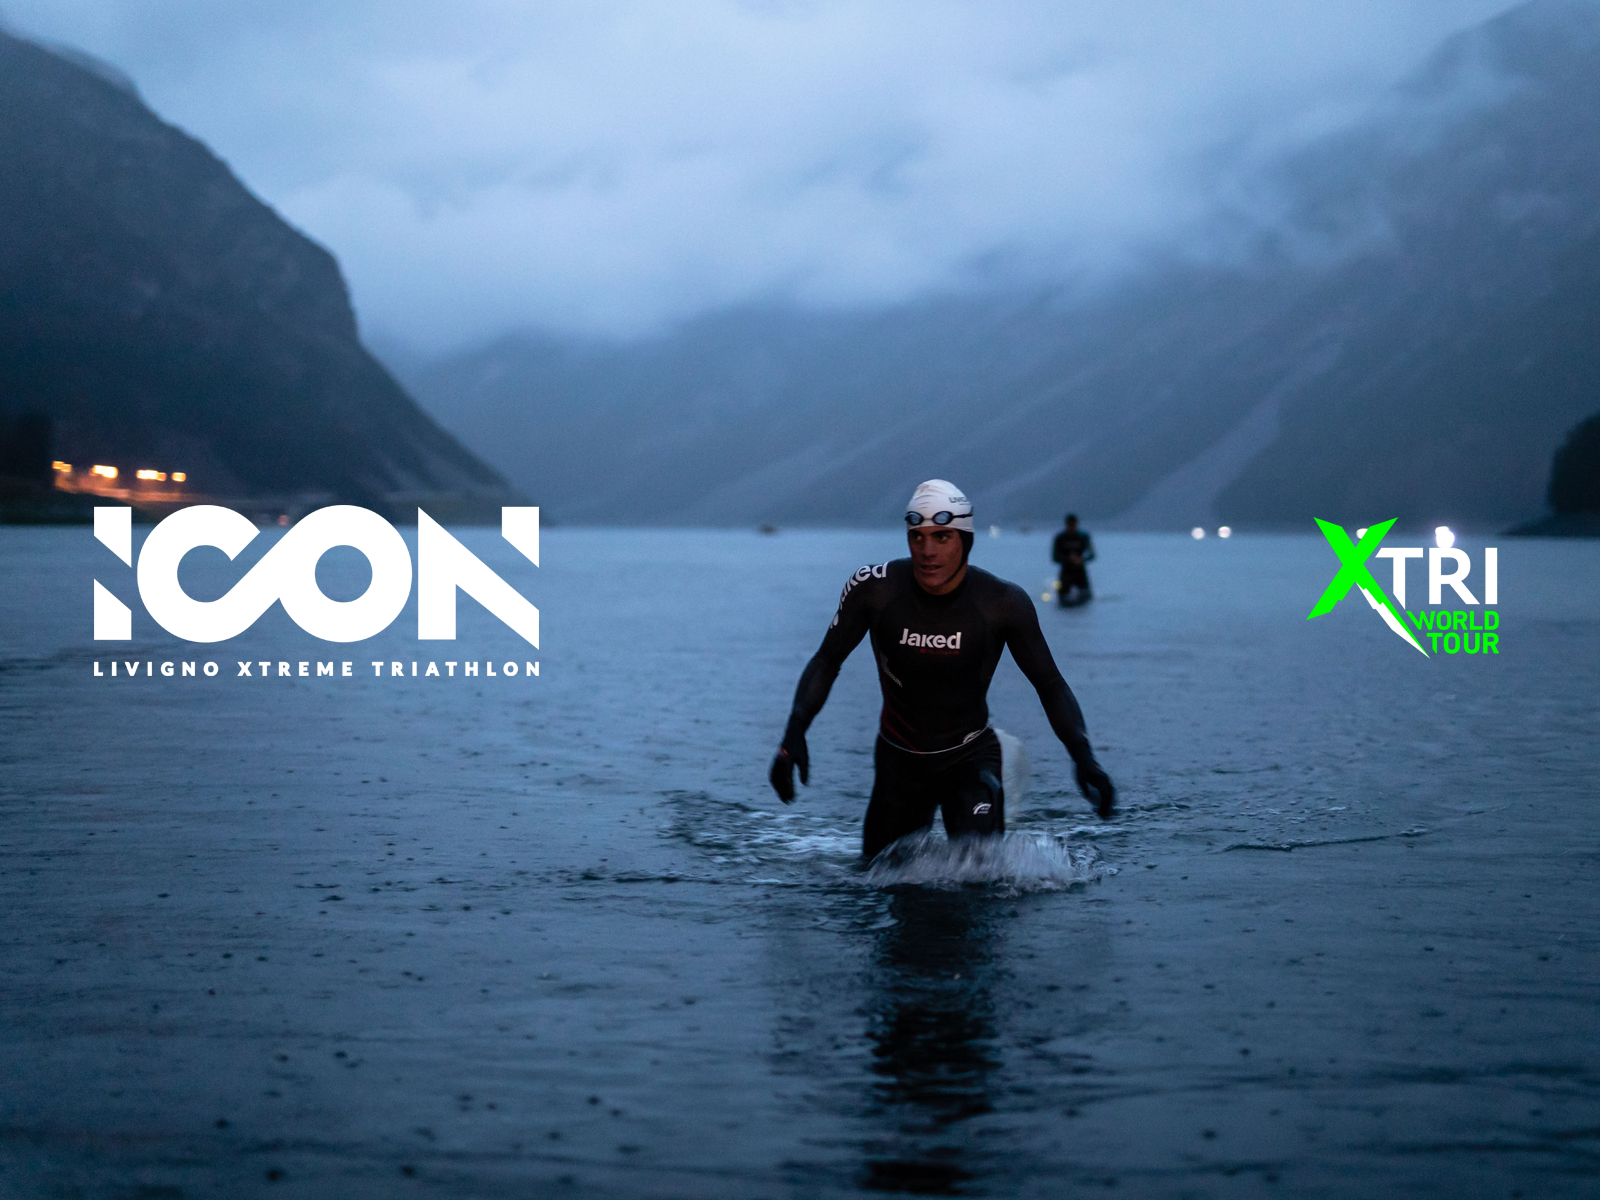 ICON \u002D Livigno Xtreme Triathlon - cover image